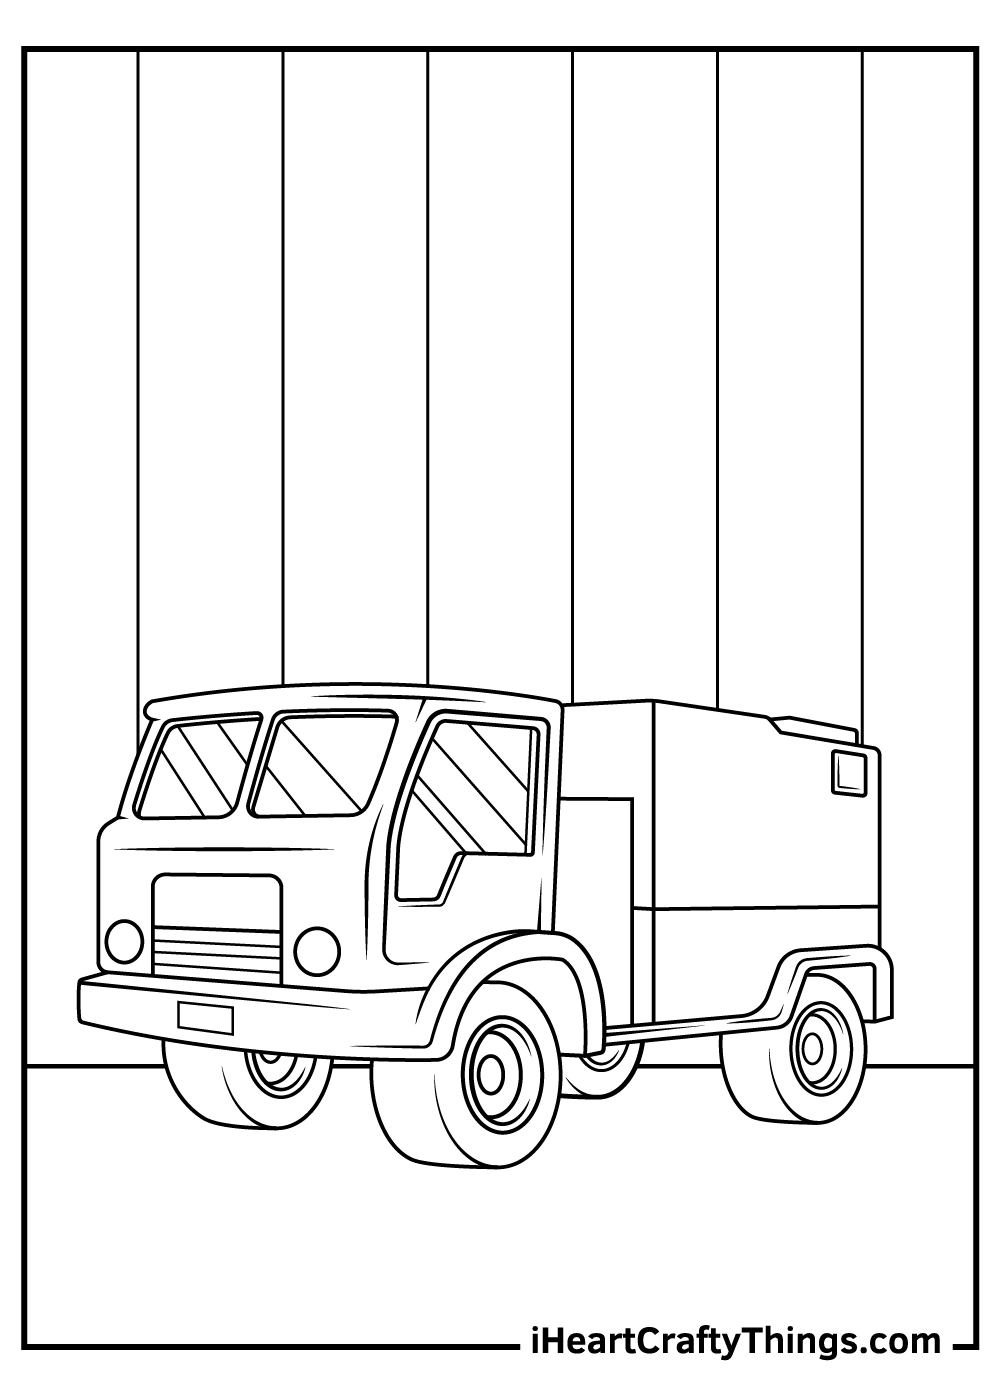 army truck coloring pages free printable